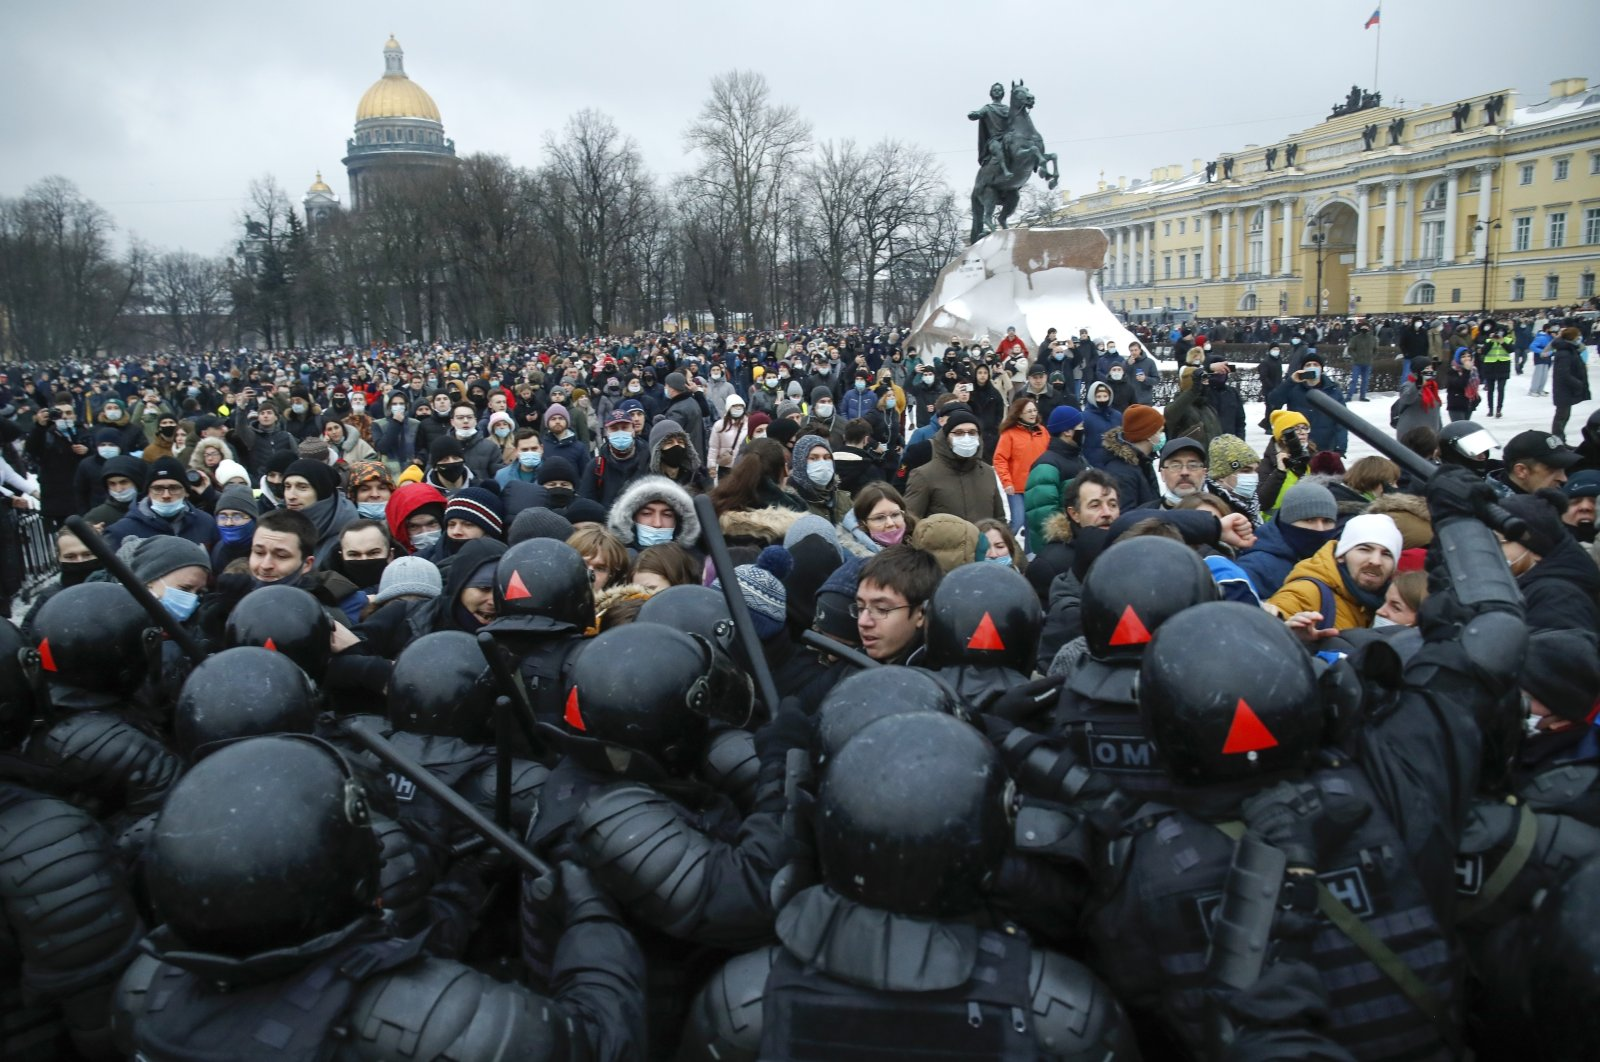 People clash with police during a protest against the jailing of opposition leader Alexei Navalny in St. Petersburg, Russia, Jan. 23, 2021. (AP Photo)